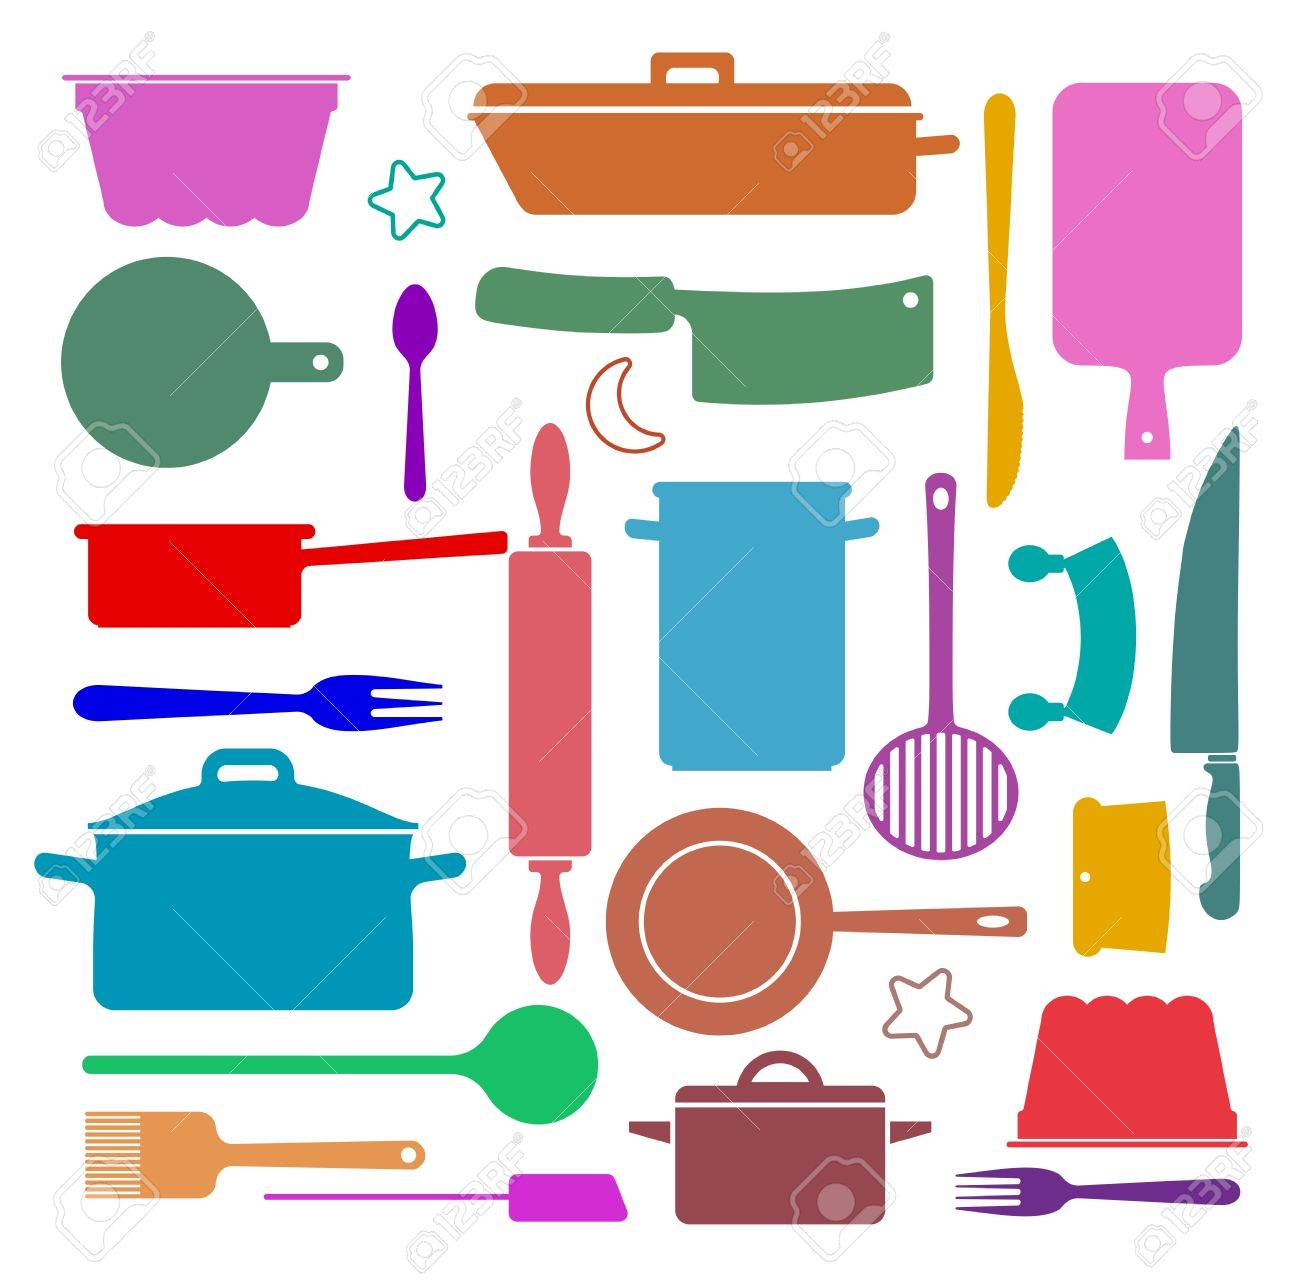 Wallpaper With Silhouettes Of Kitchen Utensils Royalty Free Cliparts